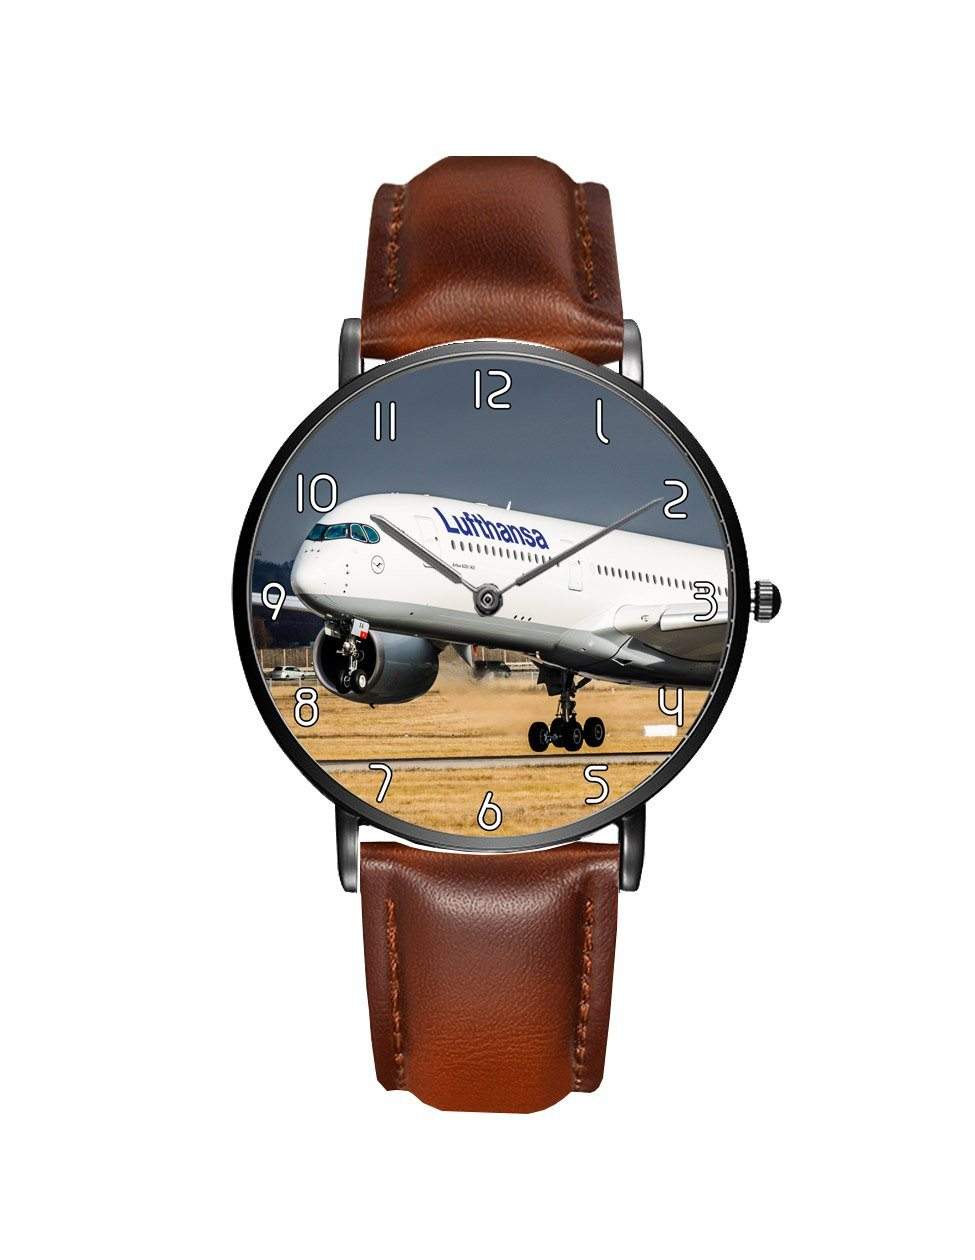 Lutfhansa A350 Printed Leather Strap Watches Aviation Shop Black & Brown Leather Strap